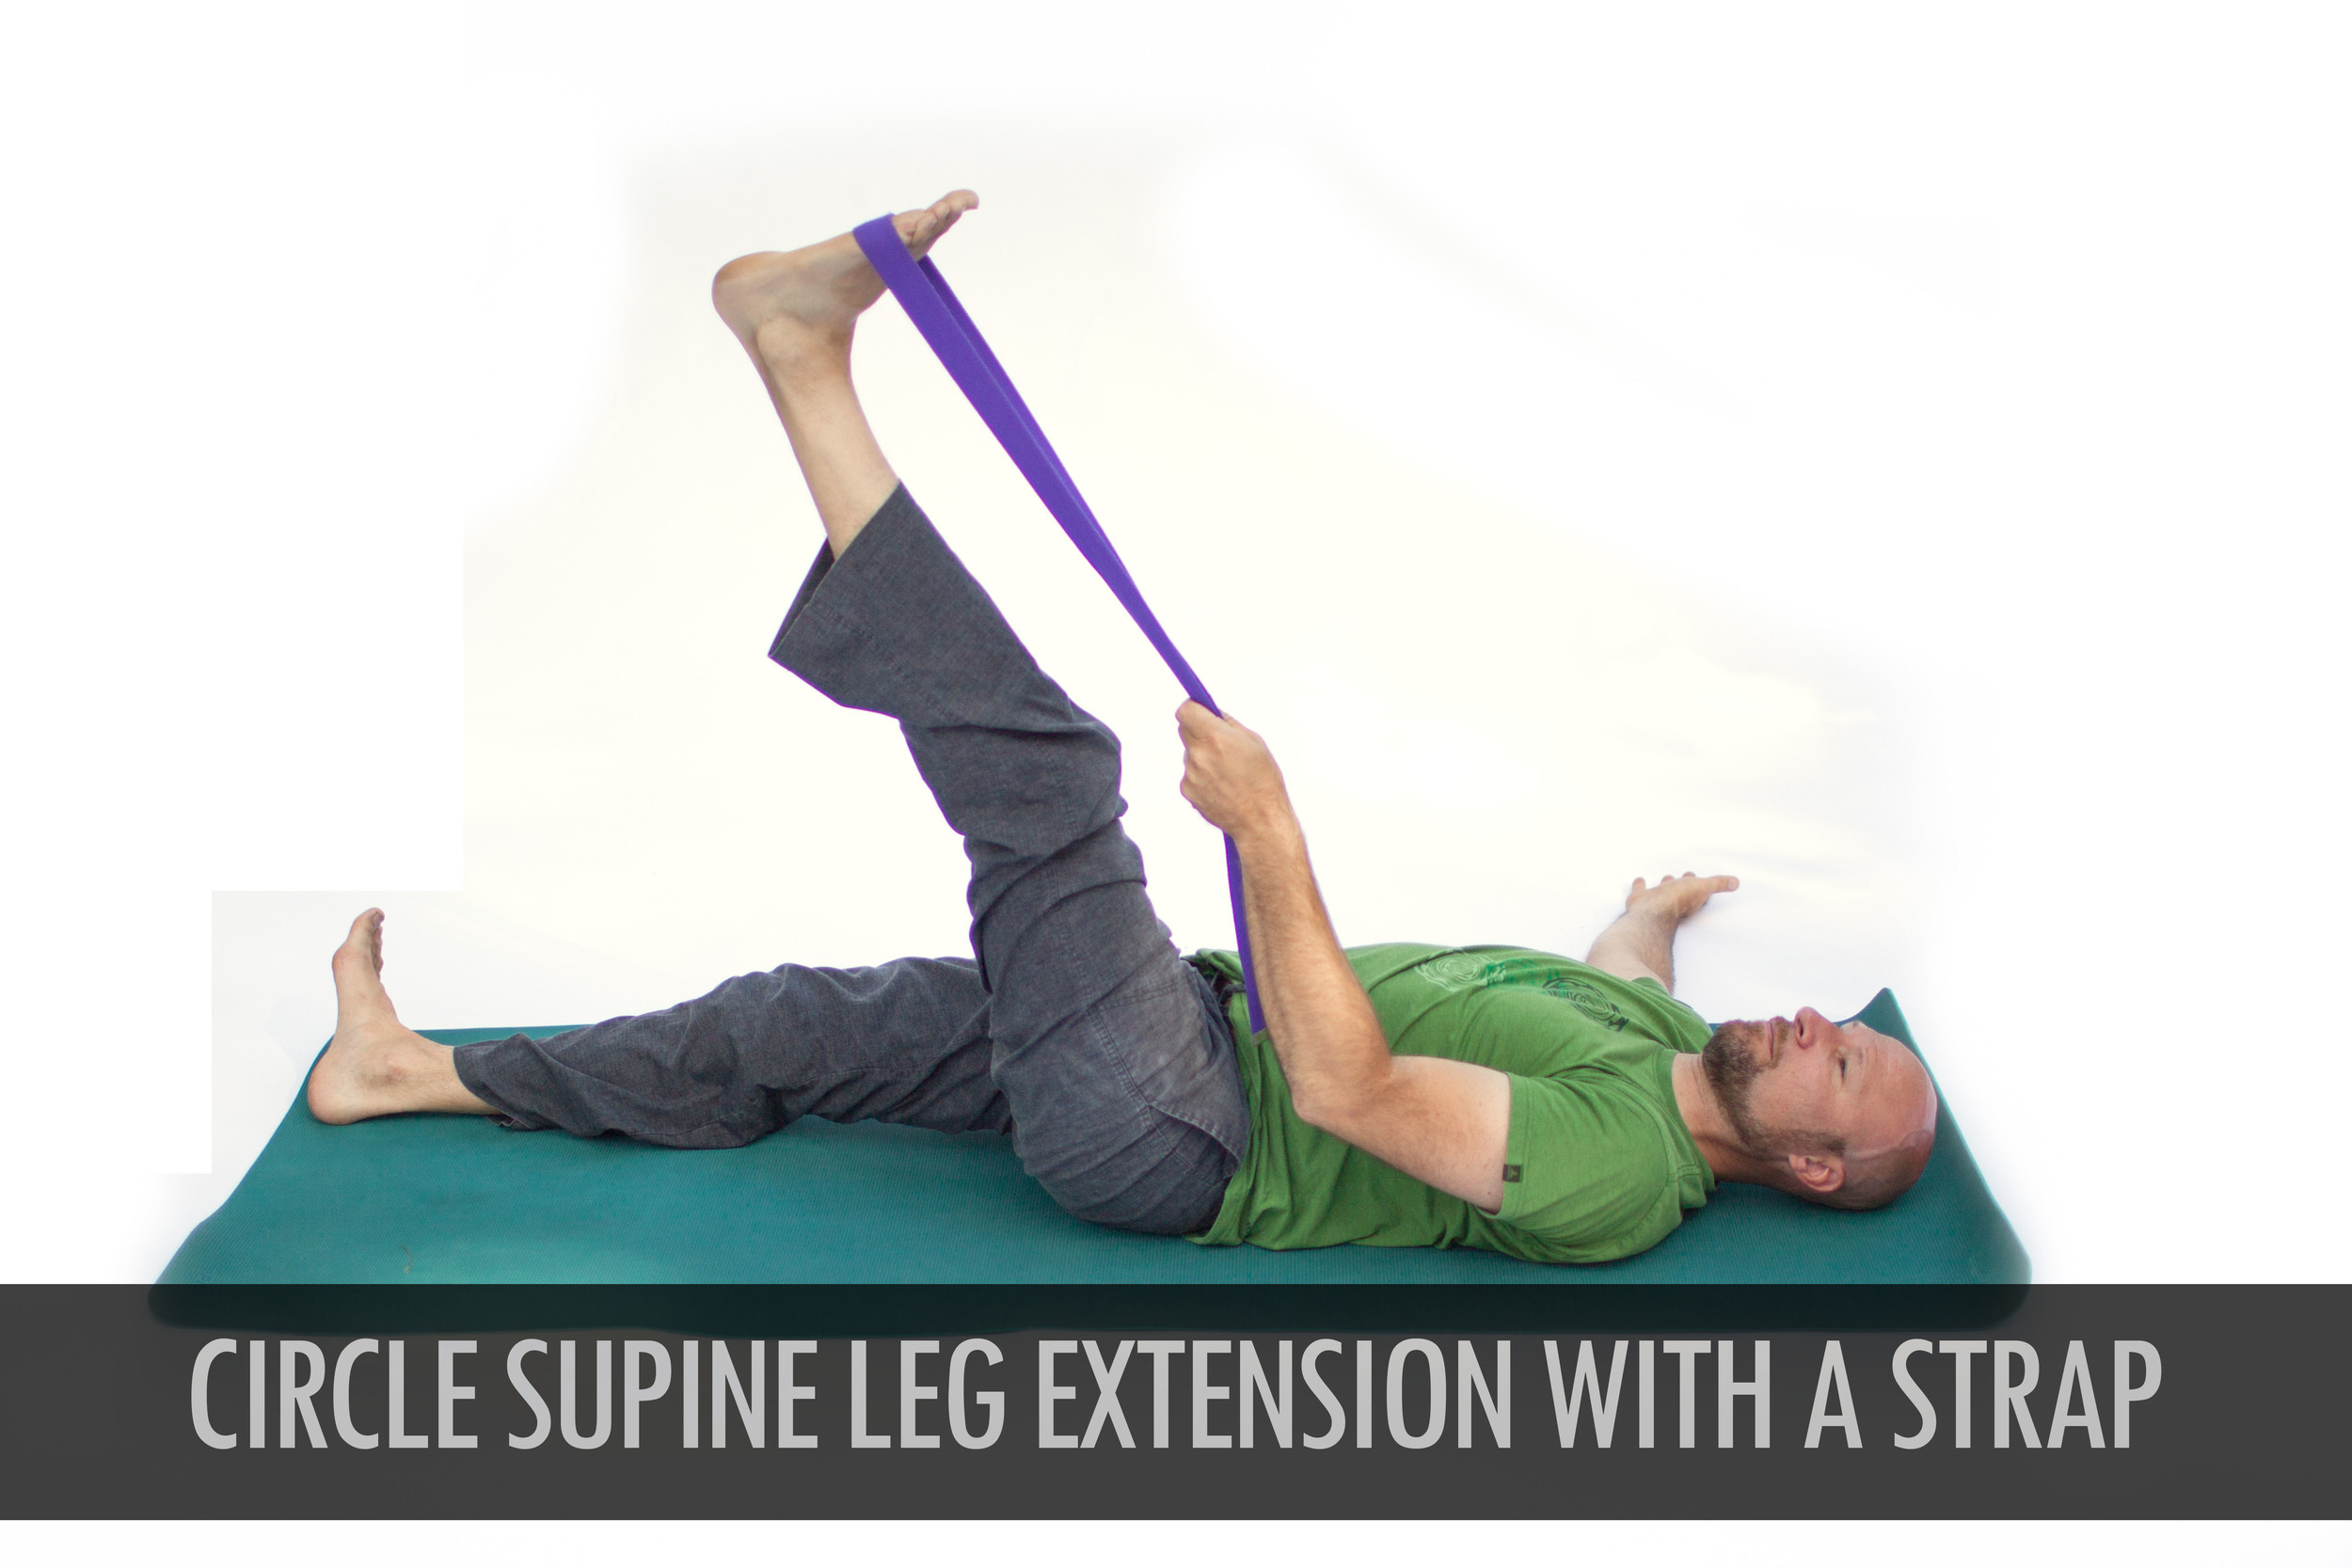 Deep Supine Leg Extension With A Strap.jpg